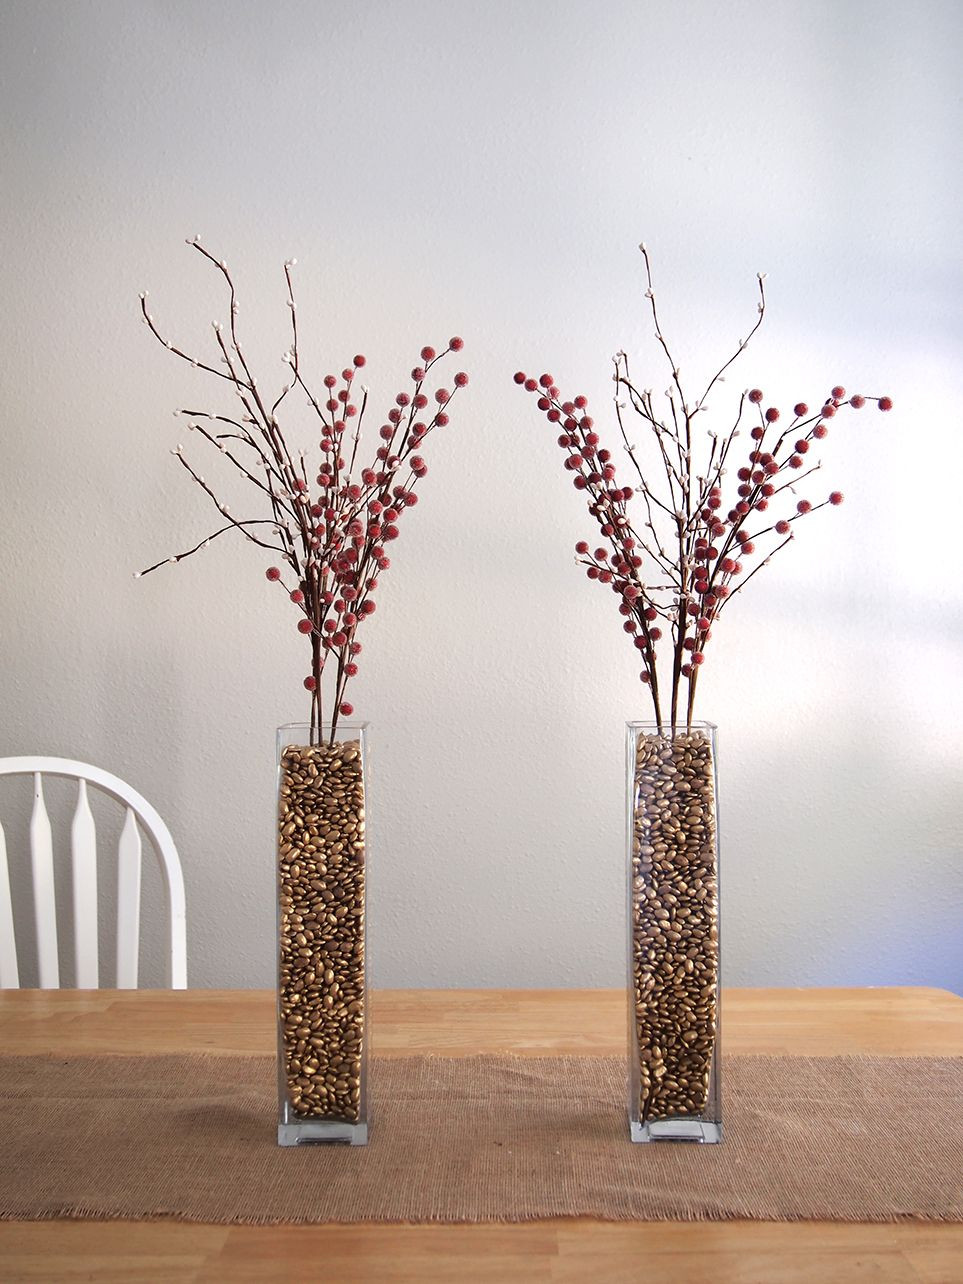 Large Vase Filler Ideas Of Spray Painted Pinto Beans Used for Vase Filler Great Idea Great within Spray Painted Pinto Beans Used for Vase Filler Great Idea